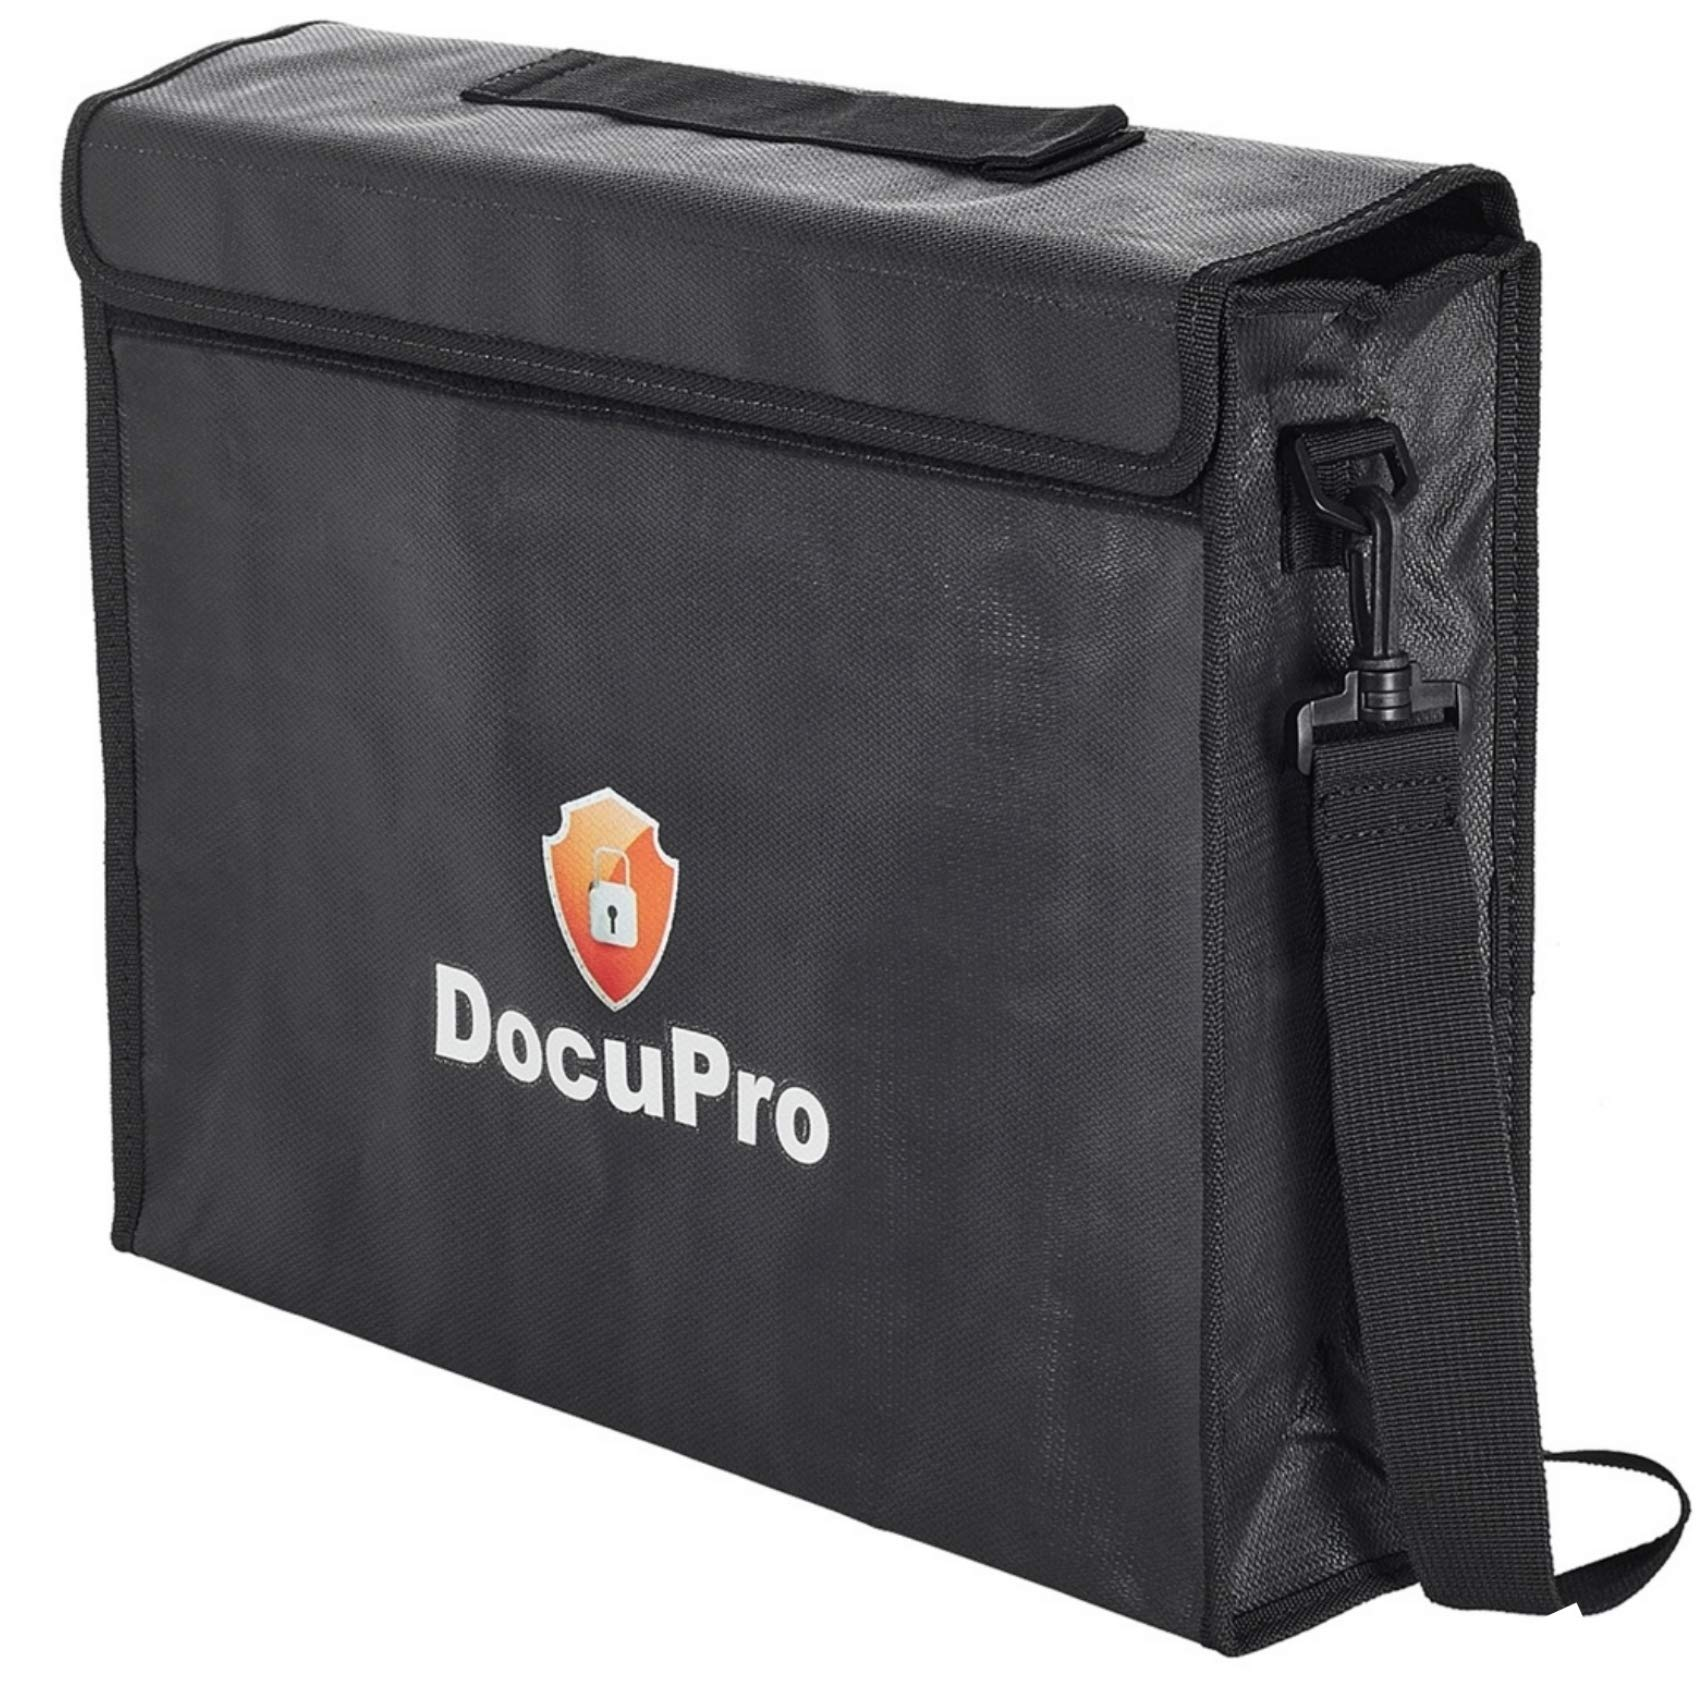 Fireproof Document Bag XXL (16''x12''x4'' Inch) with Shoulder Strap and Zipper, for Protection of Money, Passports, Jewelry, Laptops